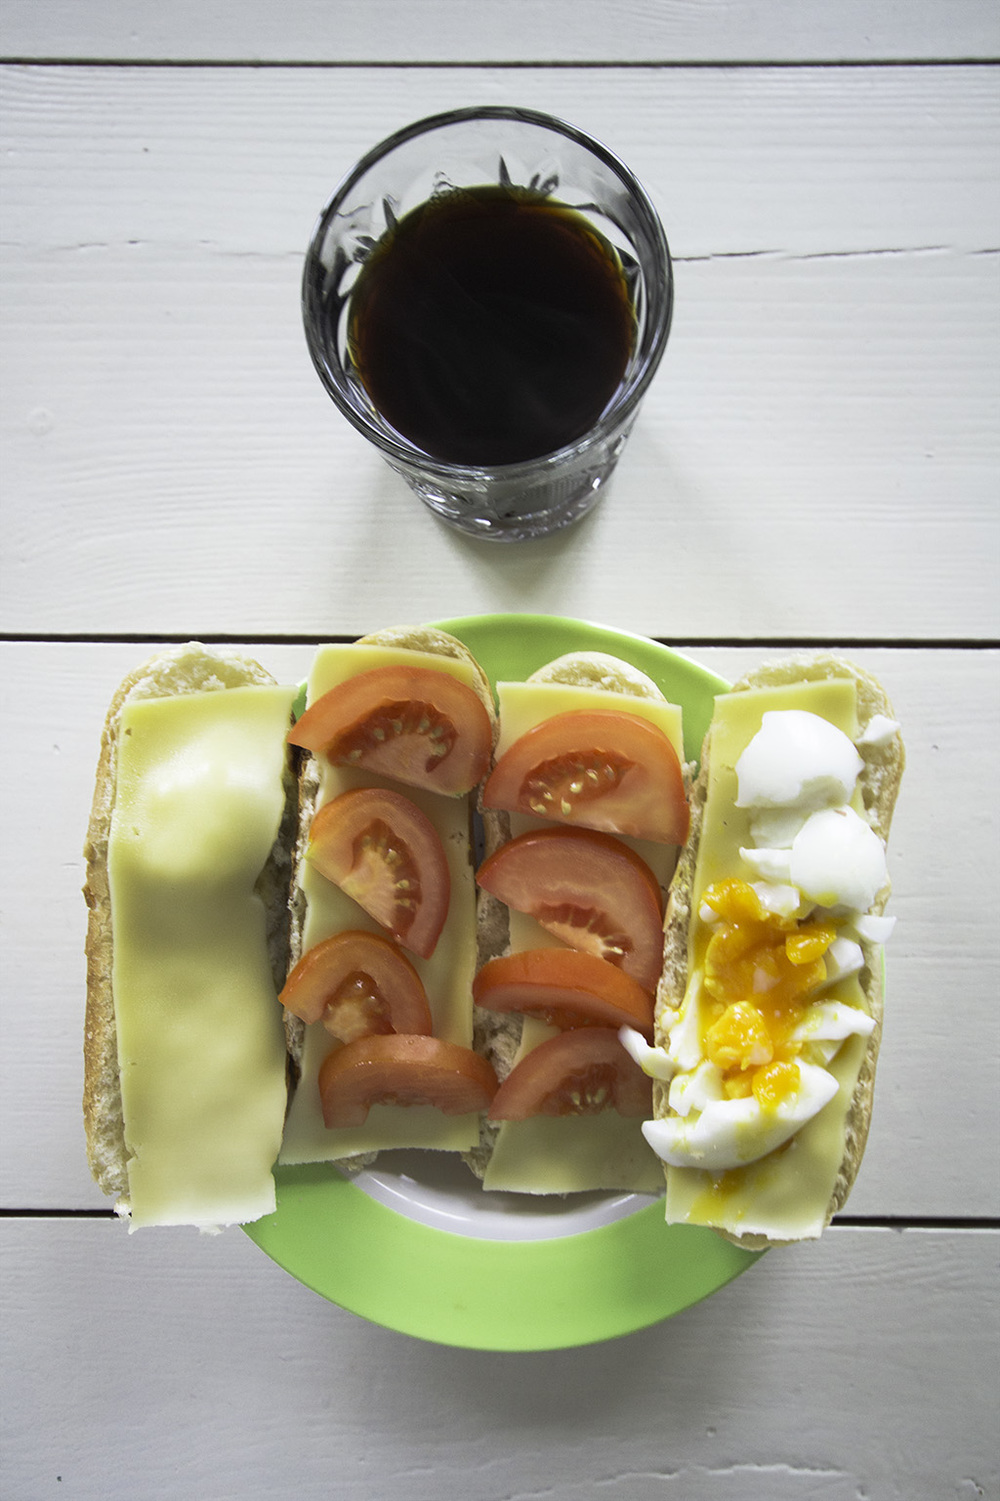 This is a classic breakfast for me during the weekends.